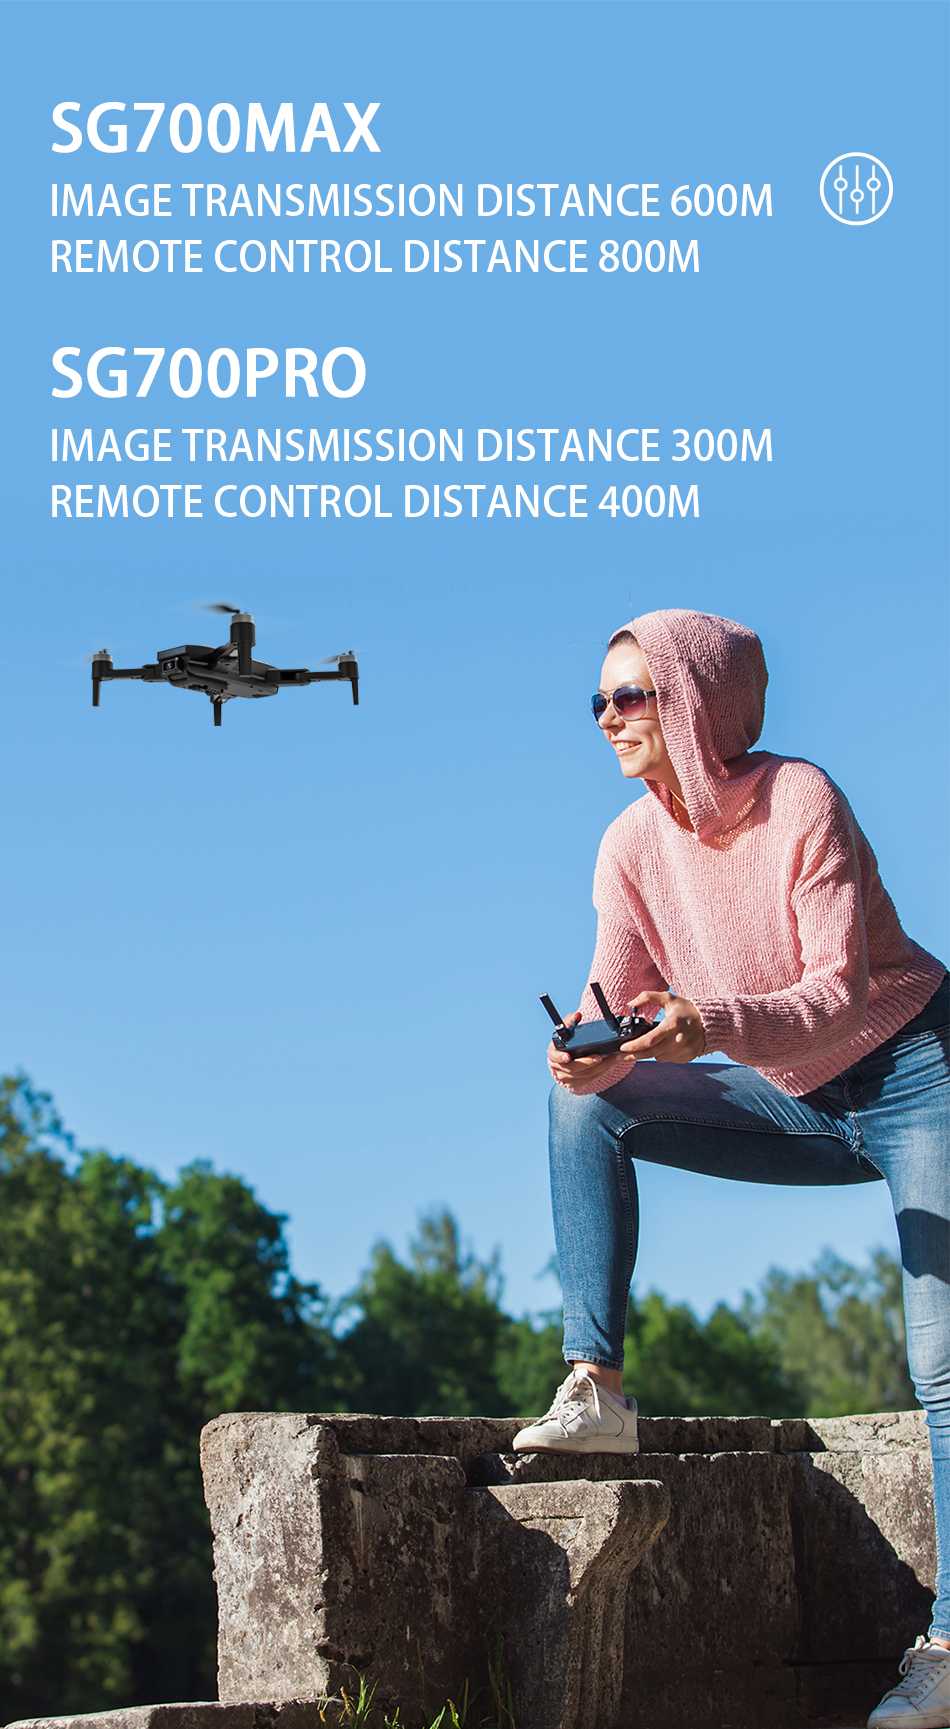 H612e9ed73a8442fe97e72636cc949bcaX - ZLL SG700 MAX Drone GPS 5G WiFi Dual Camera Brushless Motor Flight RC Distance 800m SG700 Pro Foldable Professional Quadcopter